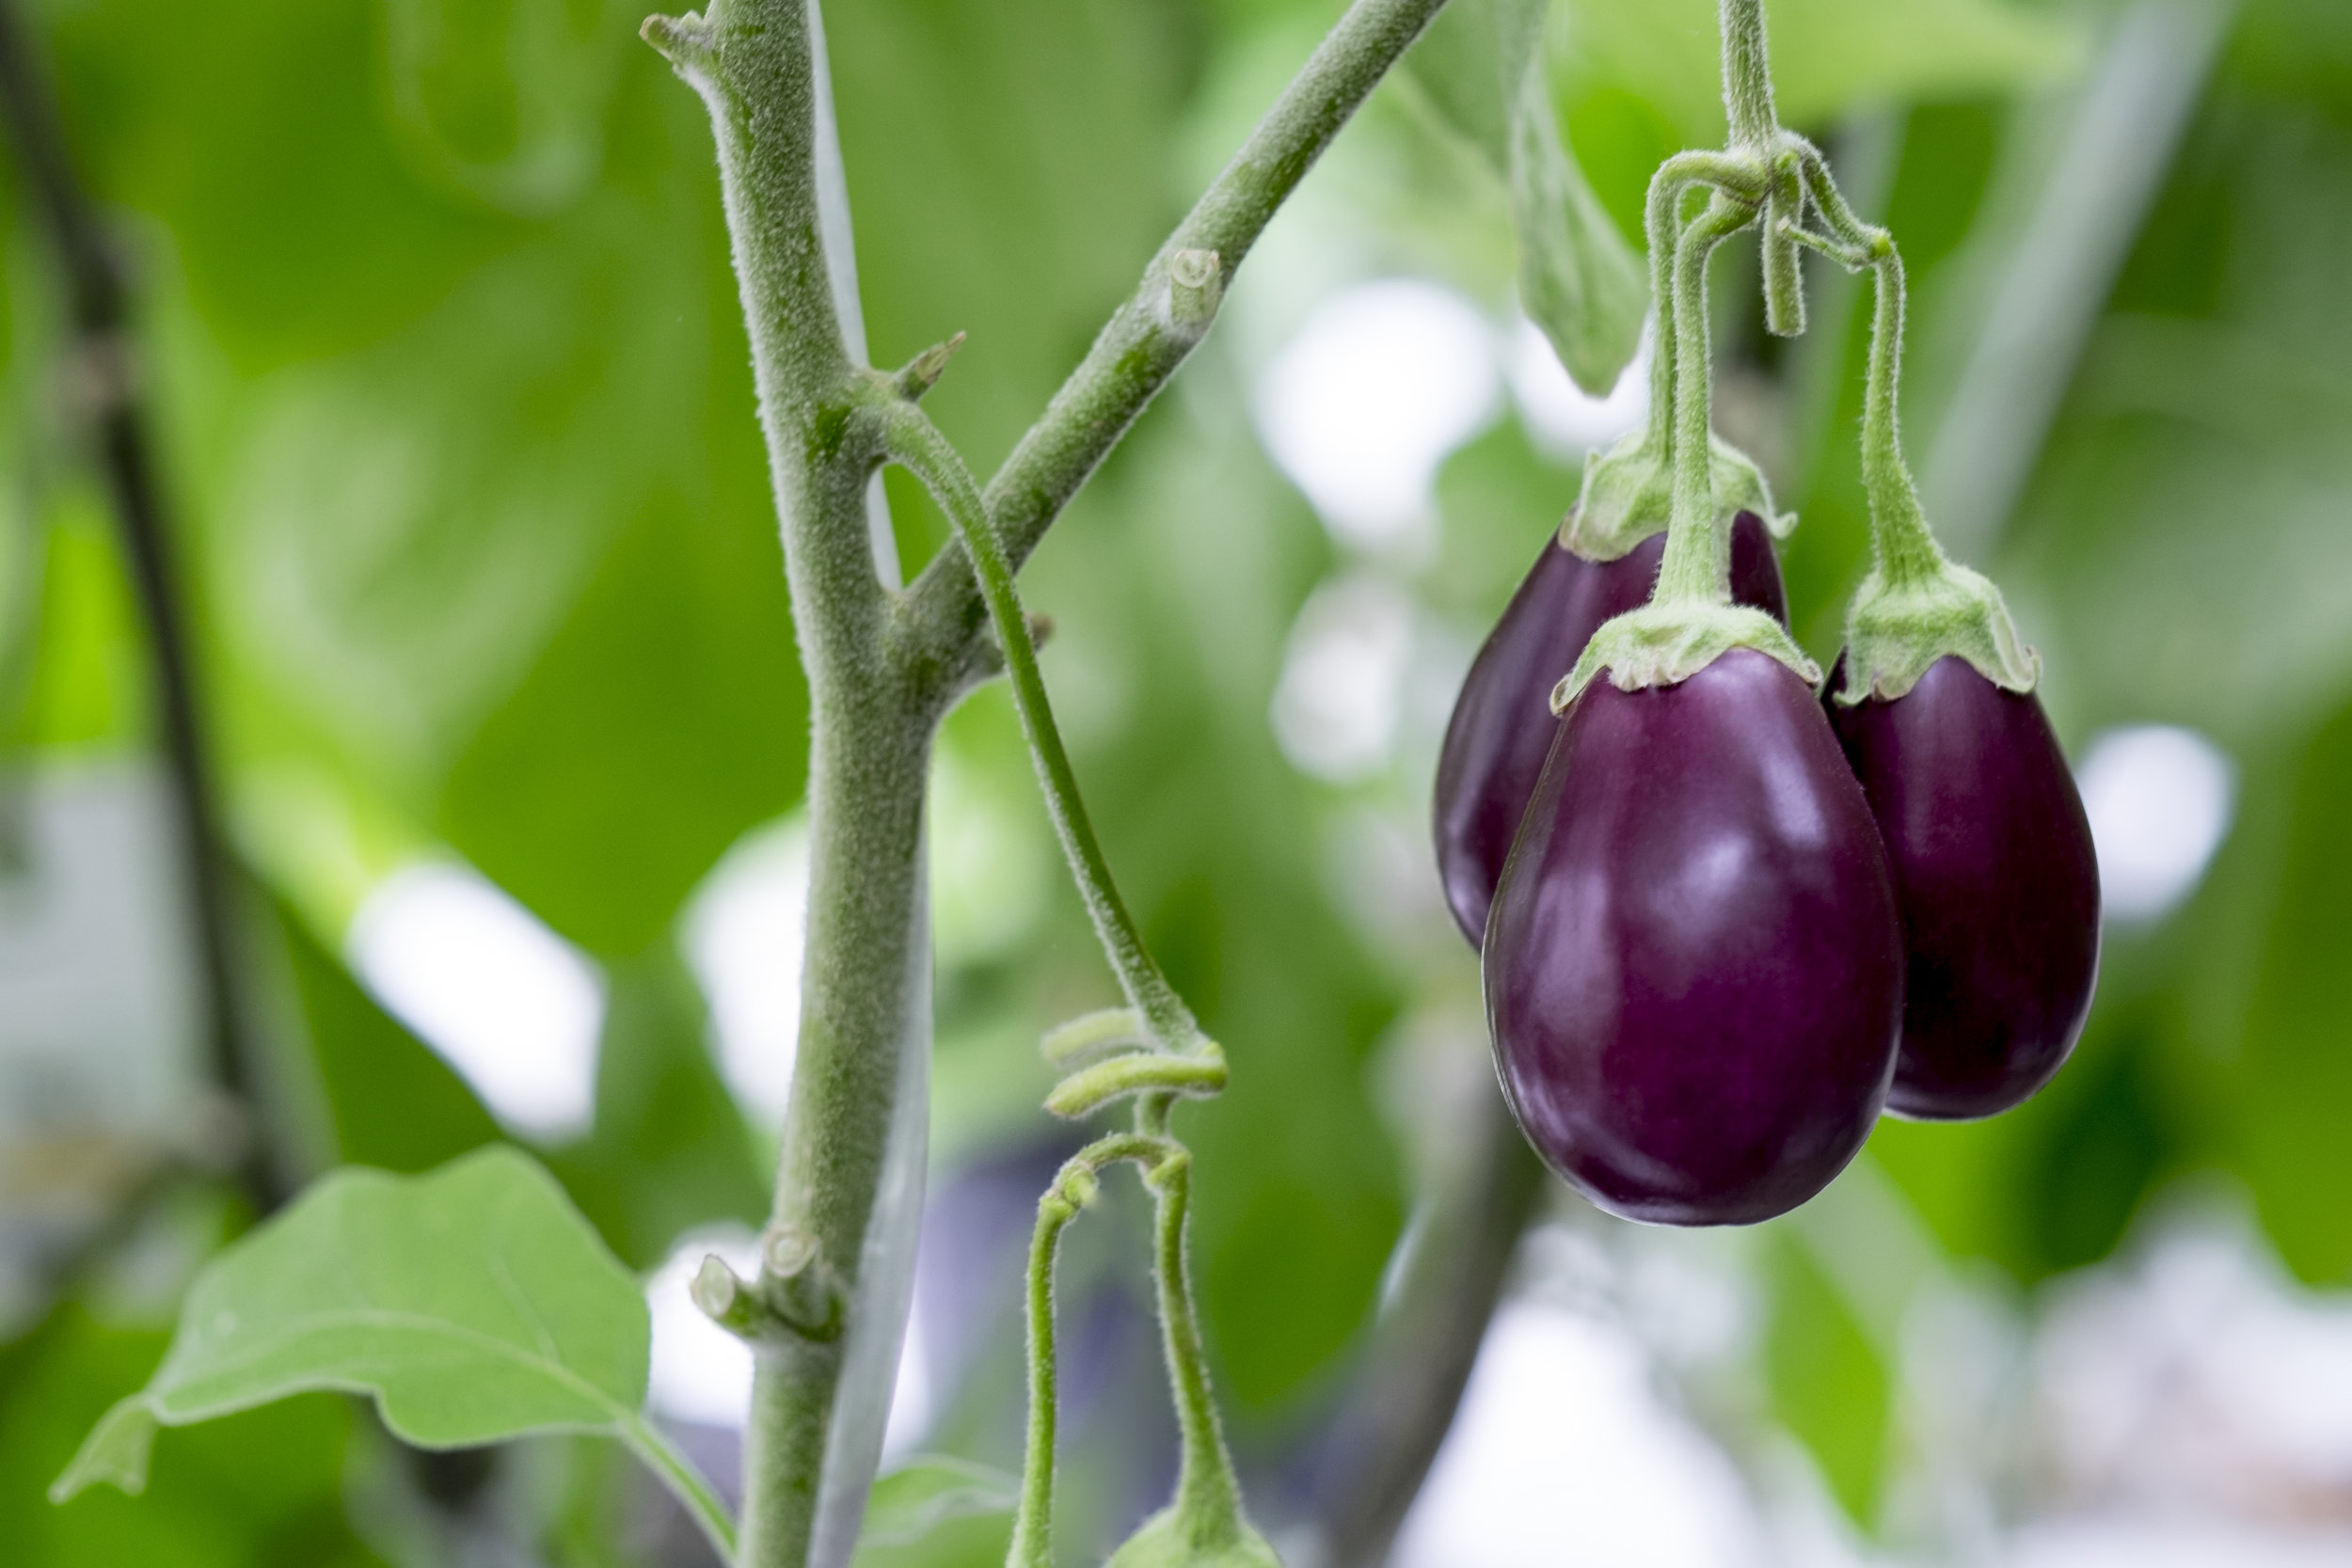 Marta-Hewson-industrial-photography-greenhouse-eggplants-Kitestring-Vineland-Research.jpg